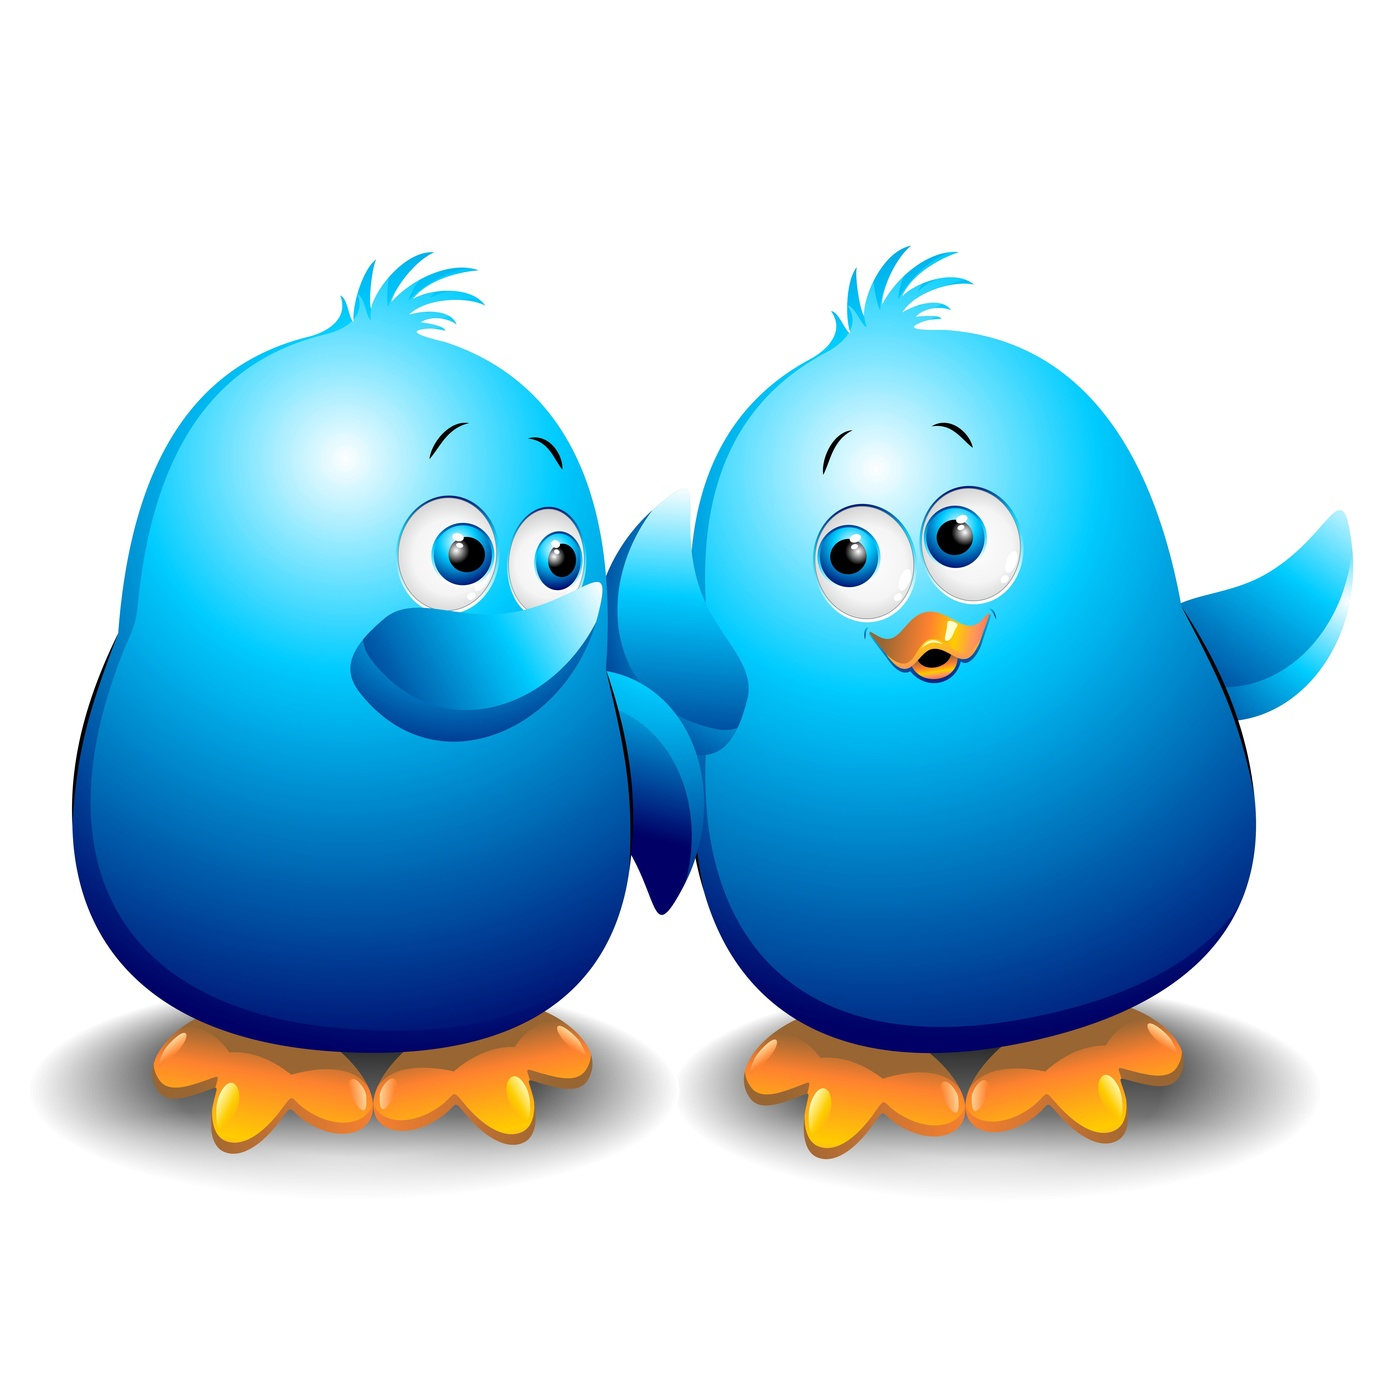 twitter for business content marketing